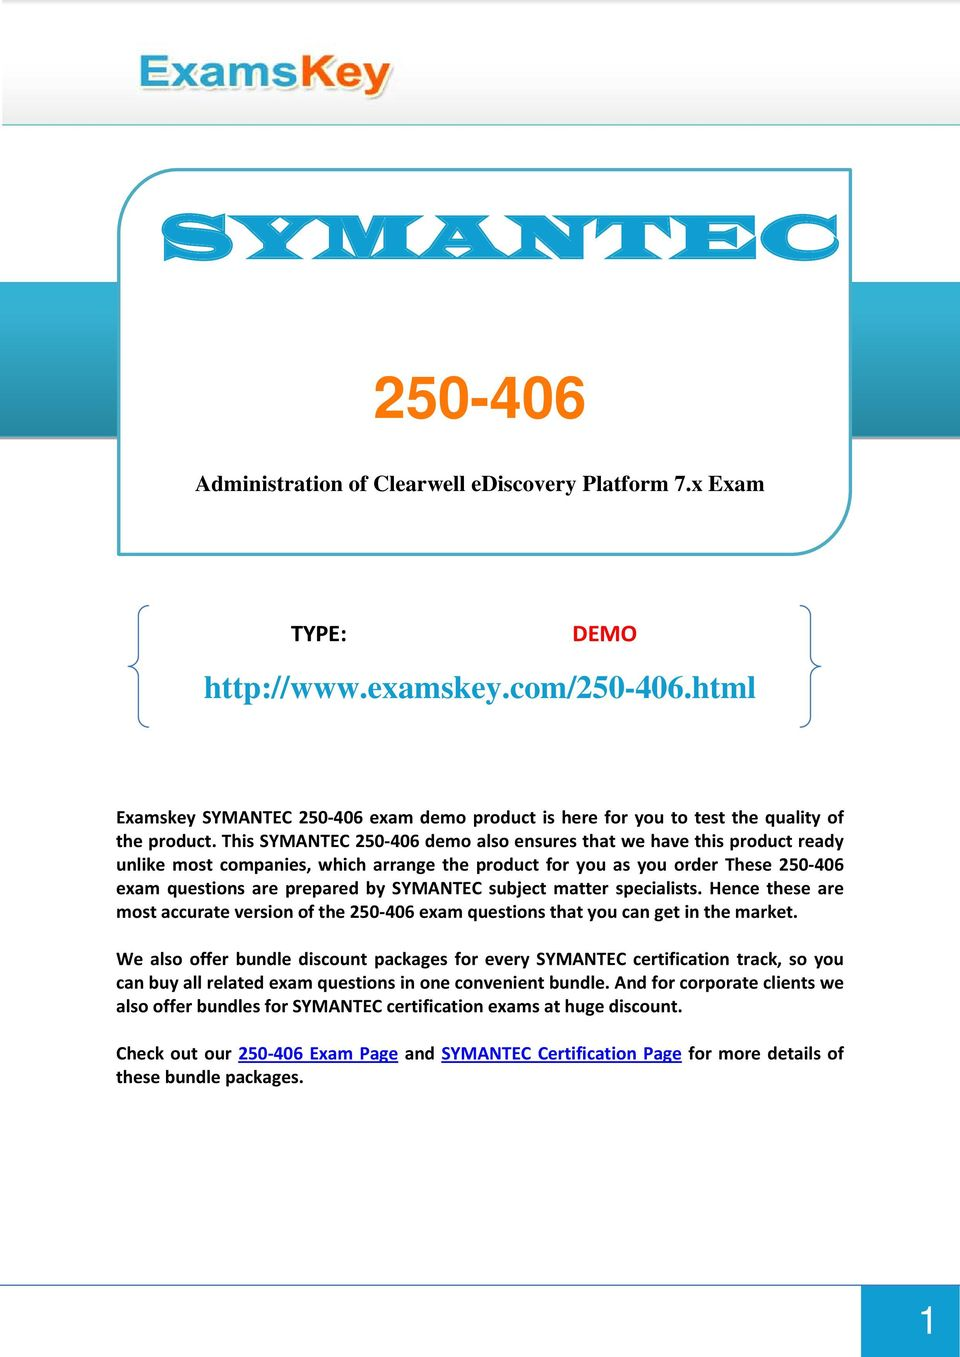 This SYMANTEC 250-406 demo also ensures that we have this product ready unlike most companies, which arrange the product for you as you order These 250-406 exam questions are prepared by SYMANTEC